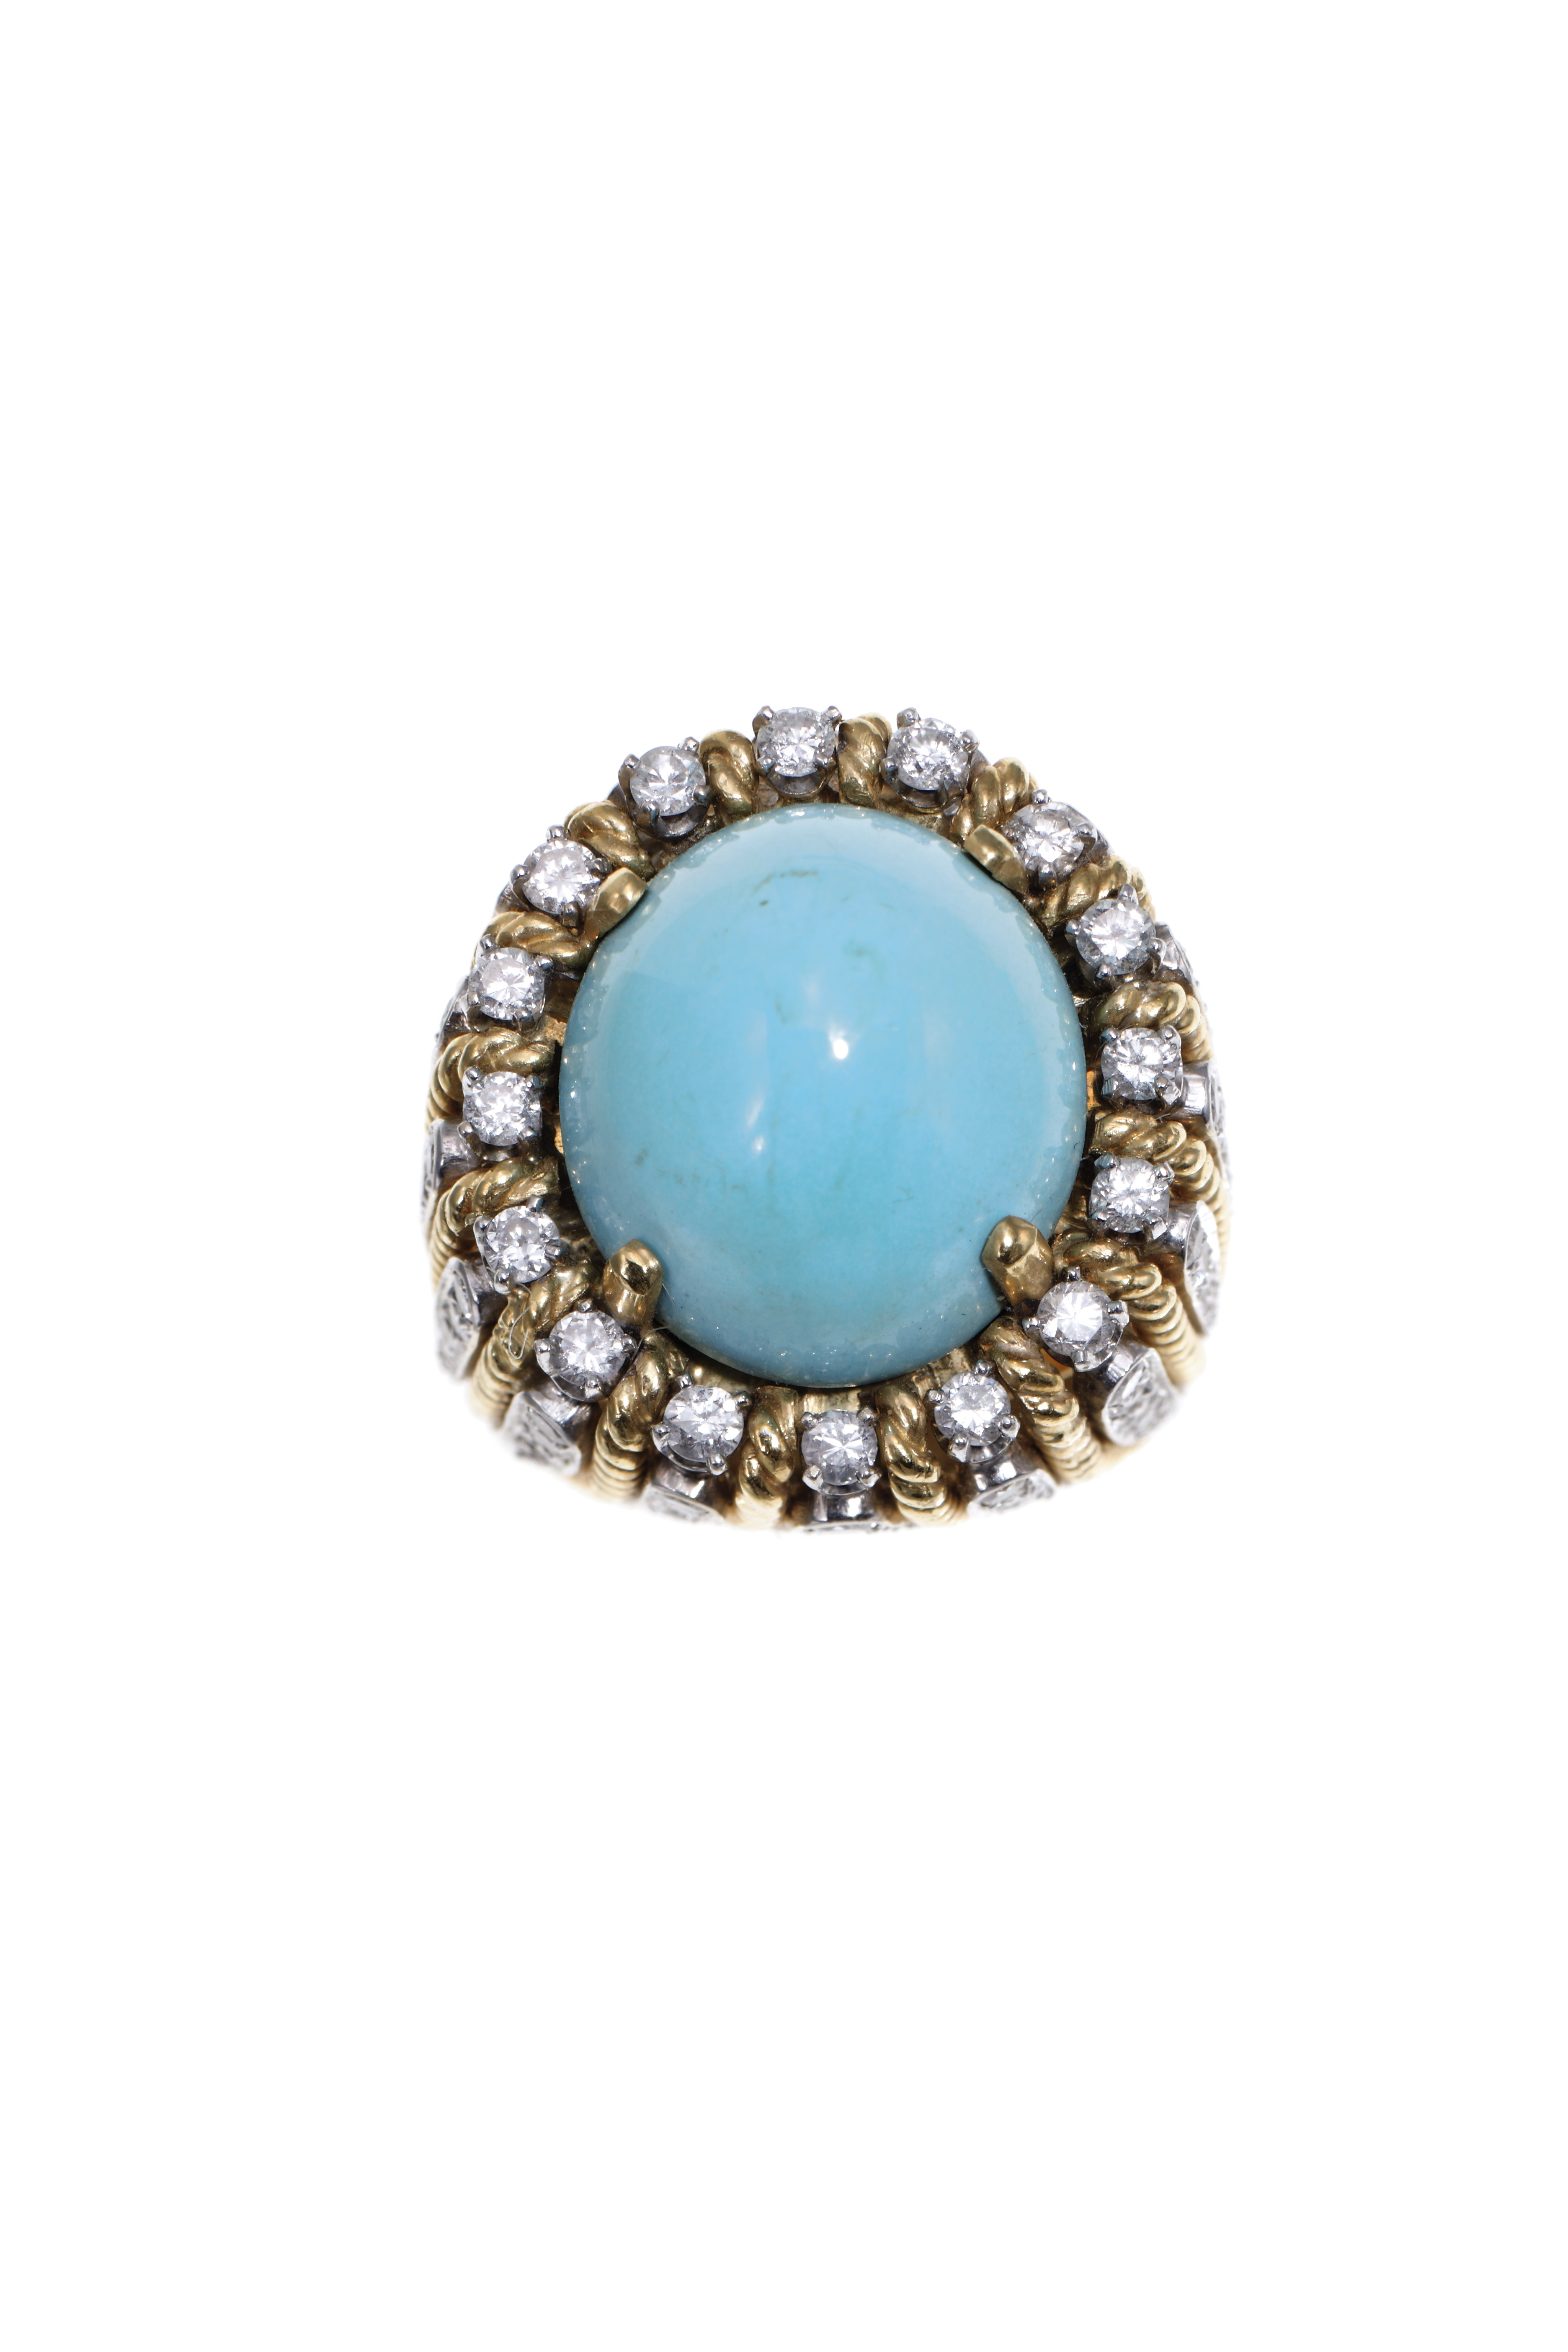 A CABOCHON TURQUOISE DIAMOND AND BICOLOR GOLD RING  Christies